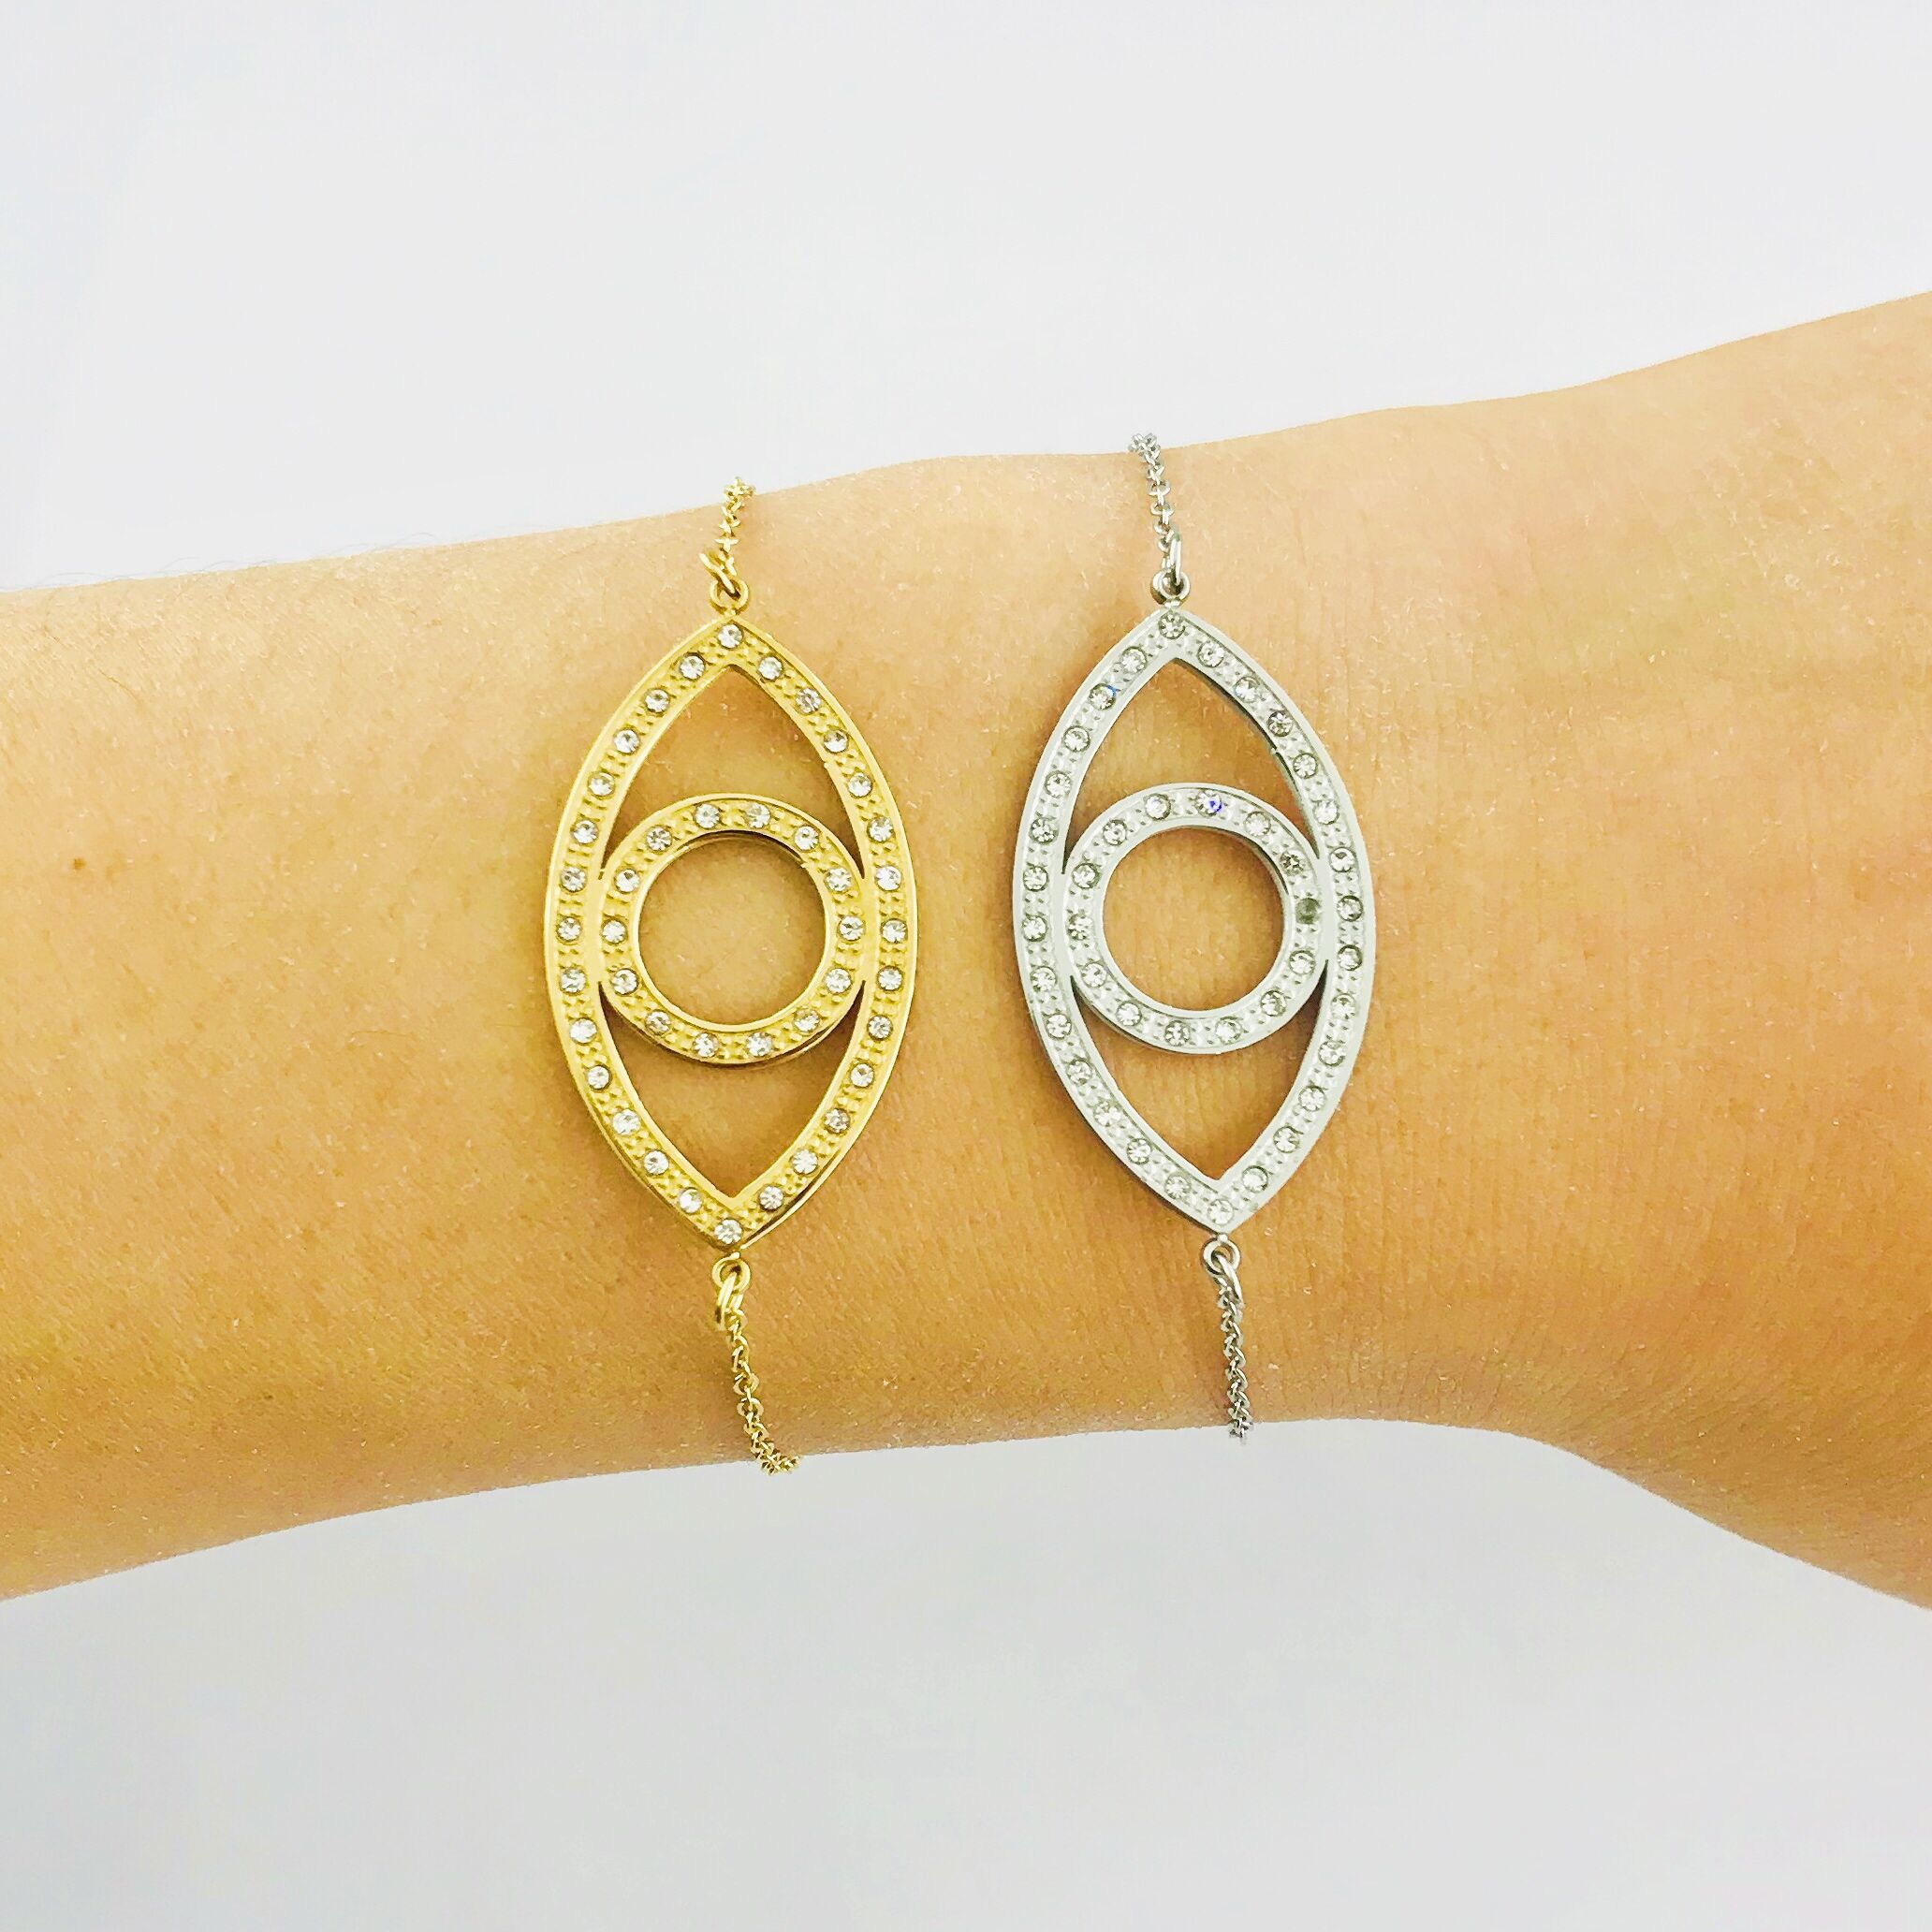 2019 Fashion Stainless Steel Turkish Crystal Evil Eye Bracelets For Women Handmade Gold Chains Lucky Jewelry Bracelet Woman From Homejewelry